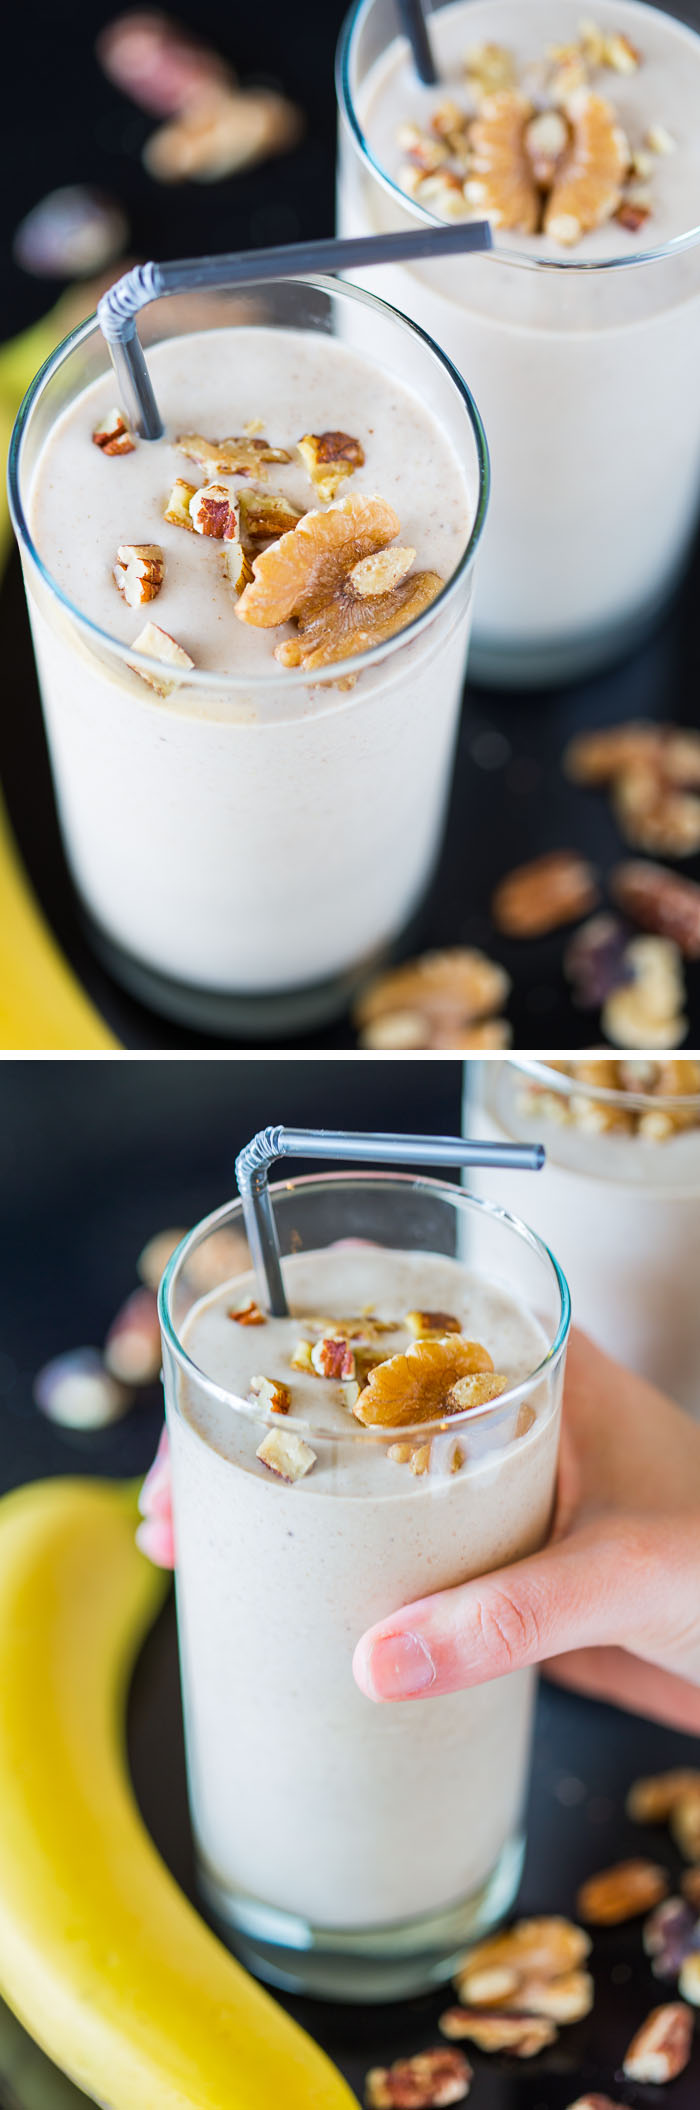 A recipe for a healthy vegan Banana Nut Crunch Smoothie with lots of protein, plus a chance to win a BlendTec Designer 725 Blender and Twister Jar!